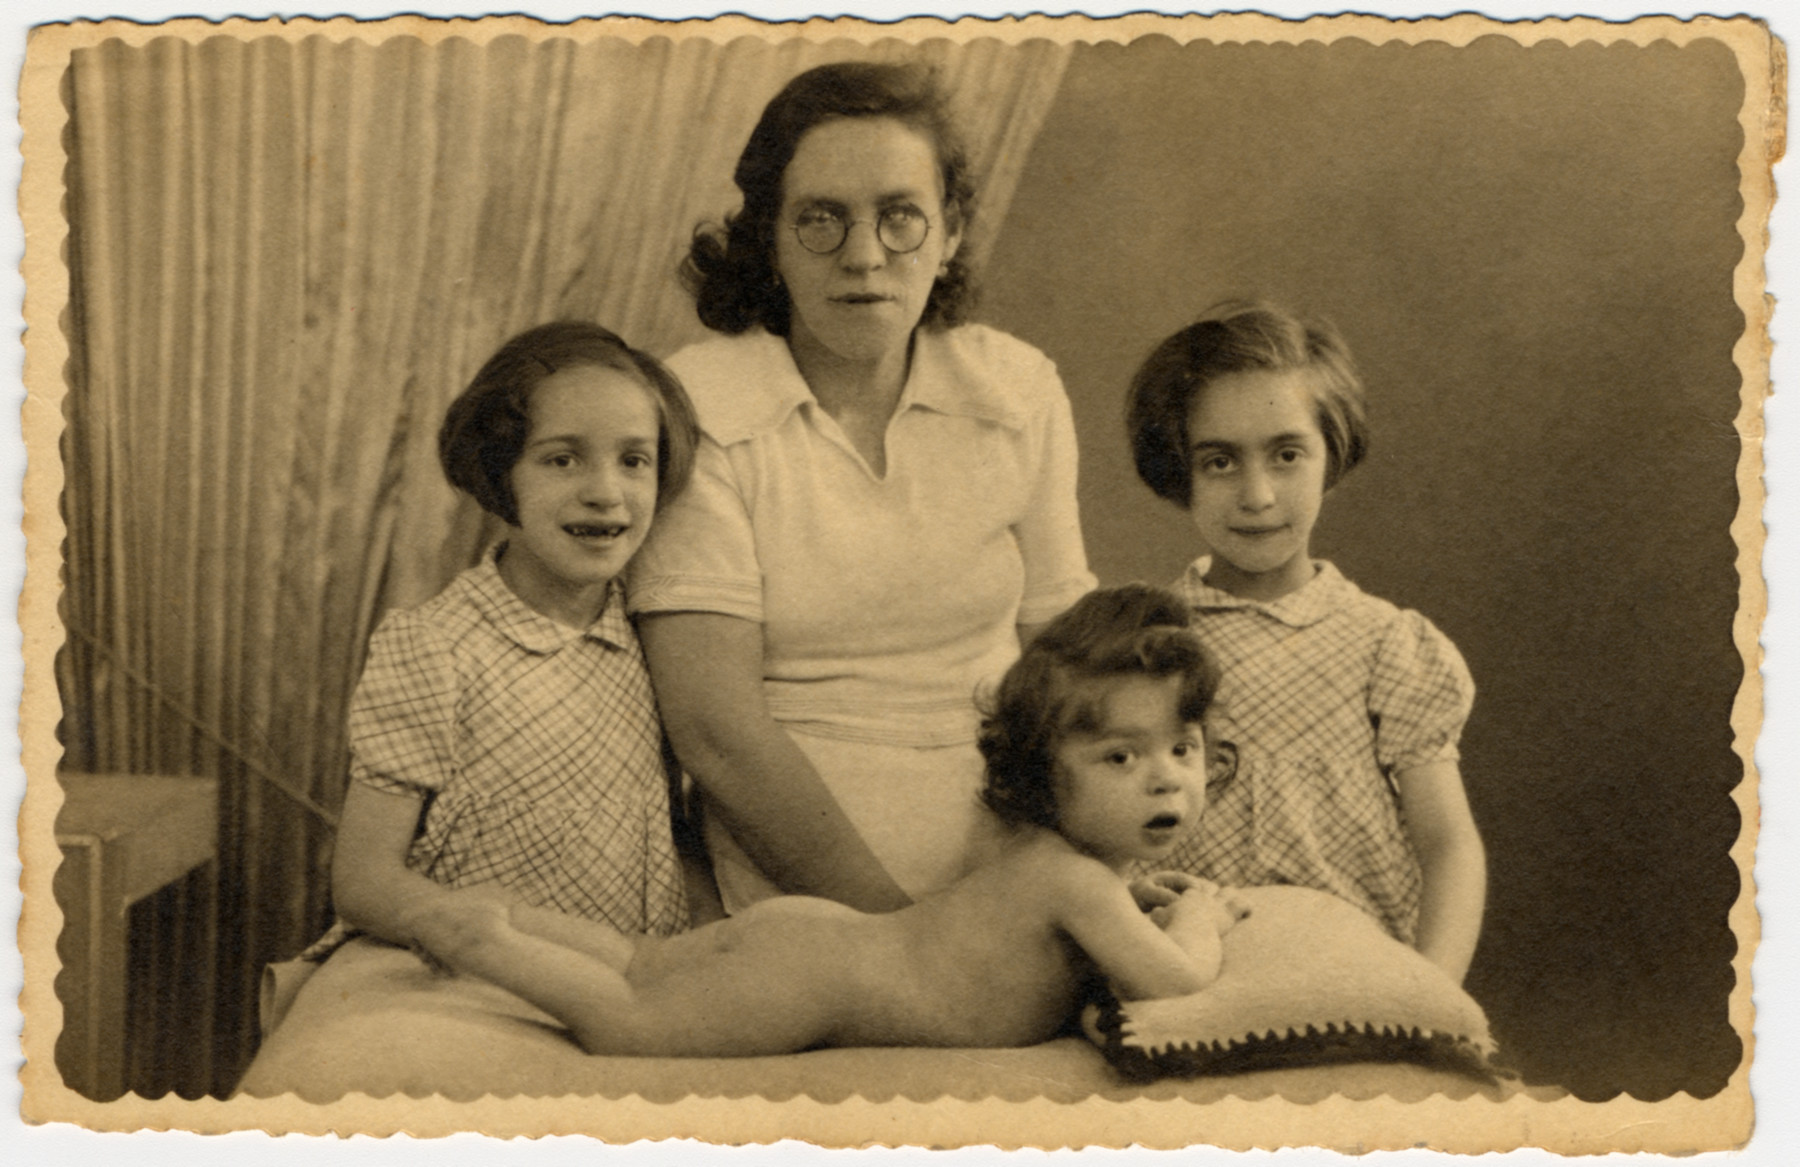 A Jewish mother, Roche Leja Feiler, poses with her three young children in Paris, France.  Pictured are Dora Feiler (left), Roche Leja Gimelstein Feiler, Michel Feiler and Paulette Feiler.